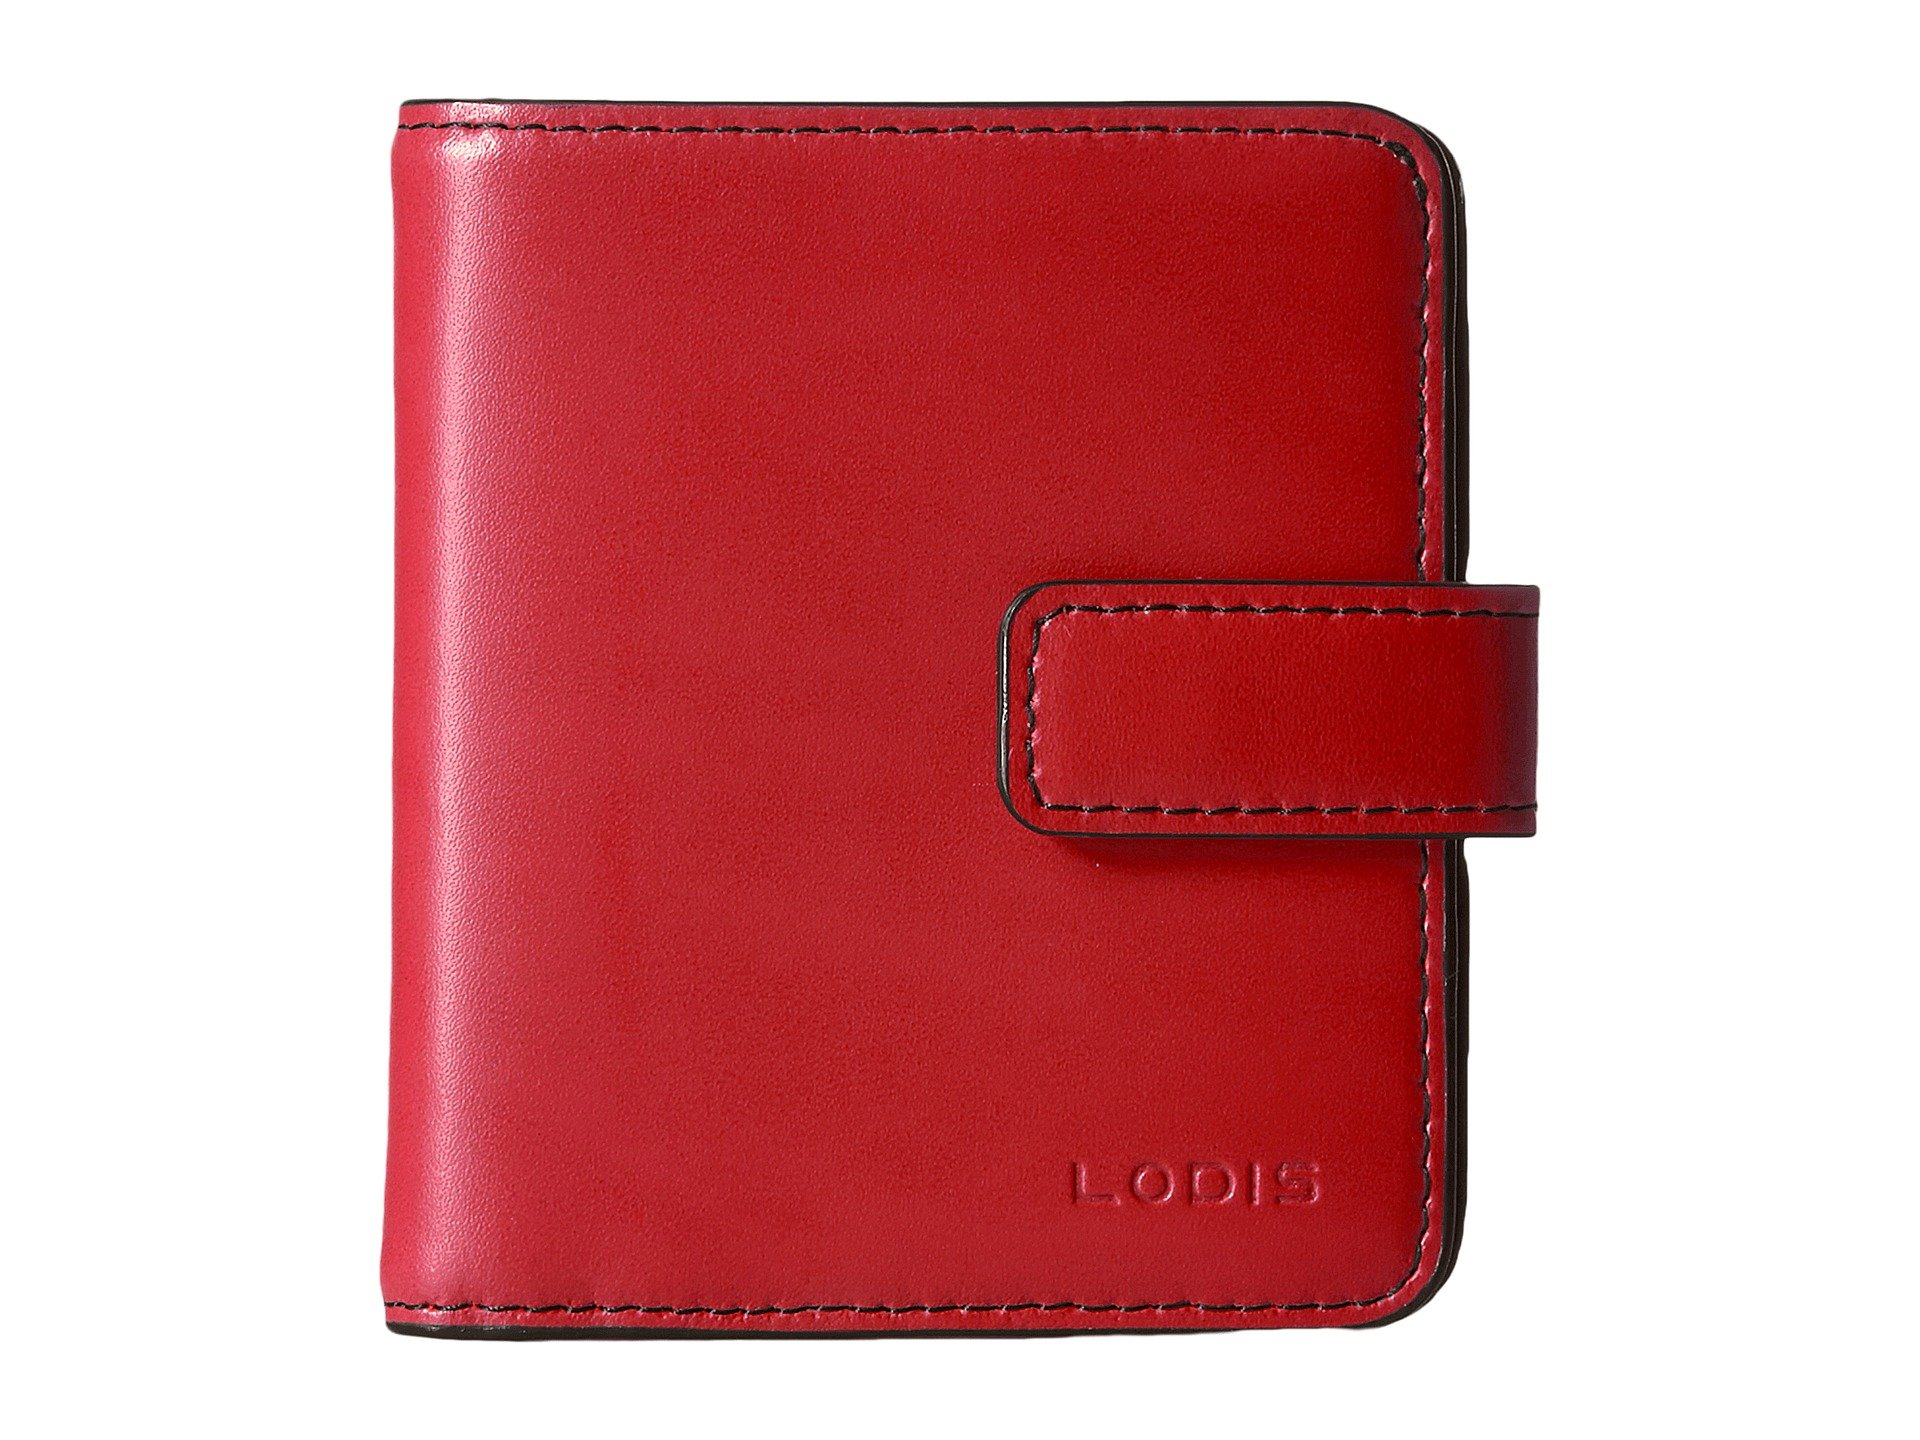 Accessories Card Case Audrey Lodis Wallet Rfid Red Petite 8xqHHSwdv